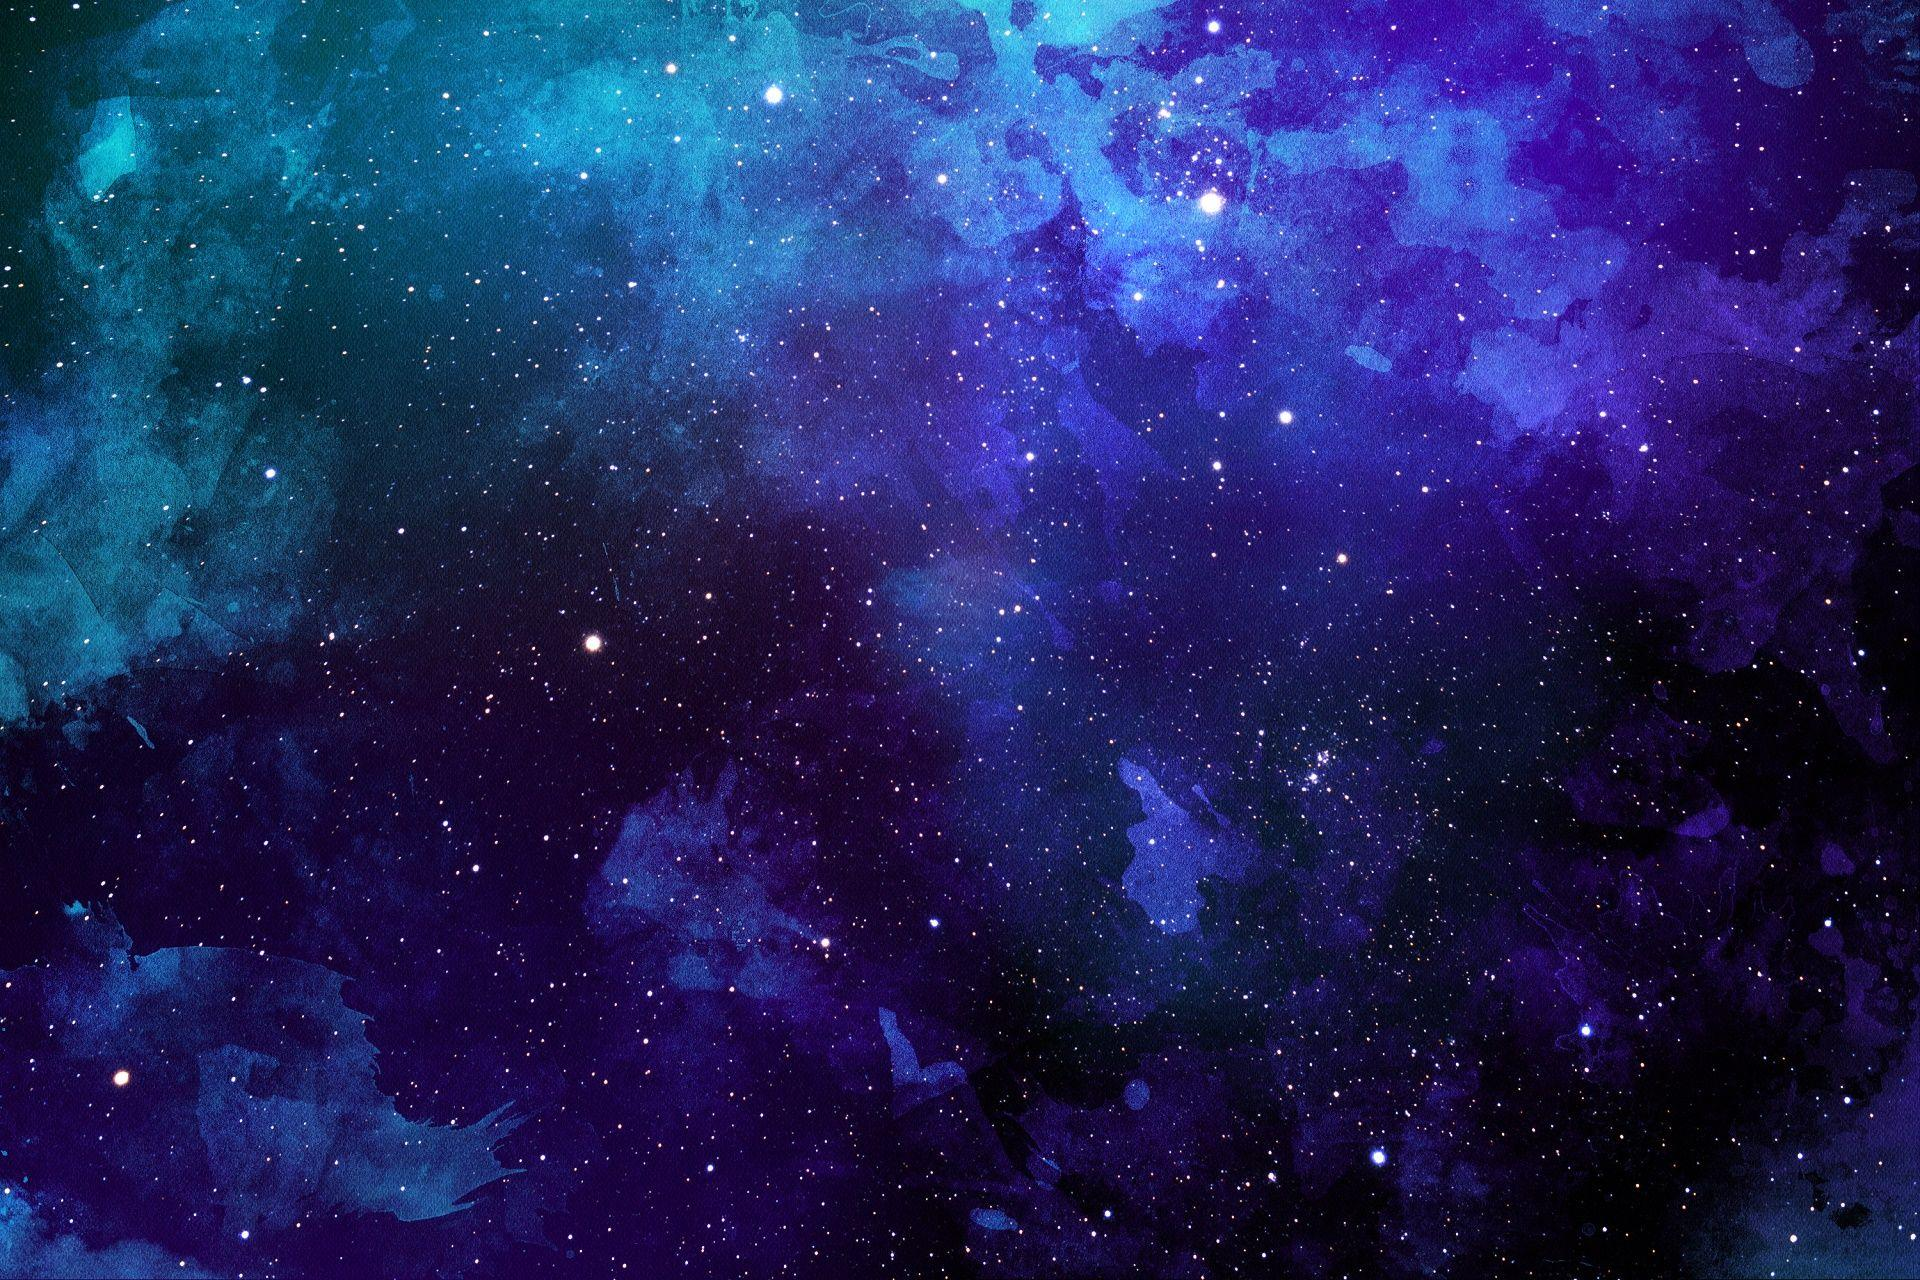 Dark Blue Aesthetic Tumblr Wallpapers And Hd Backgrounds Free Download On Picgaga